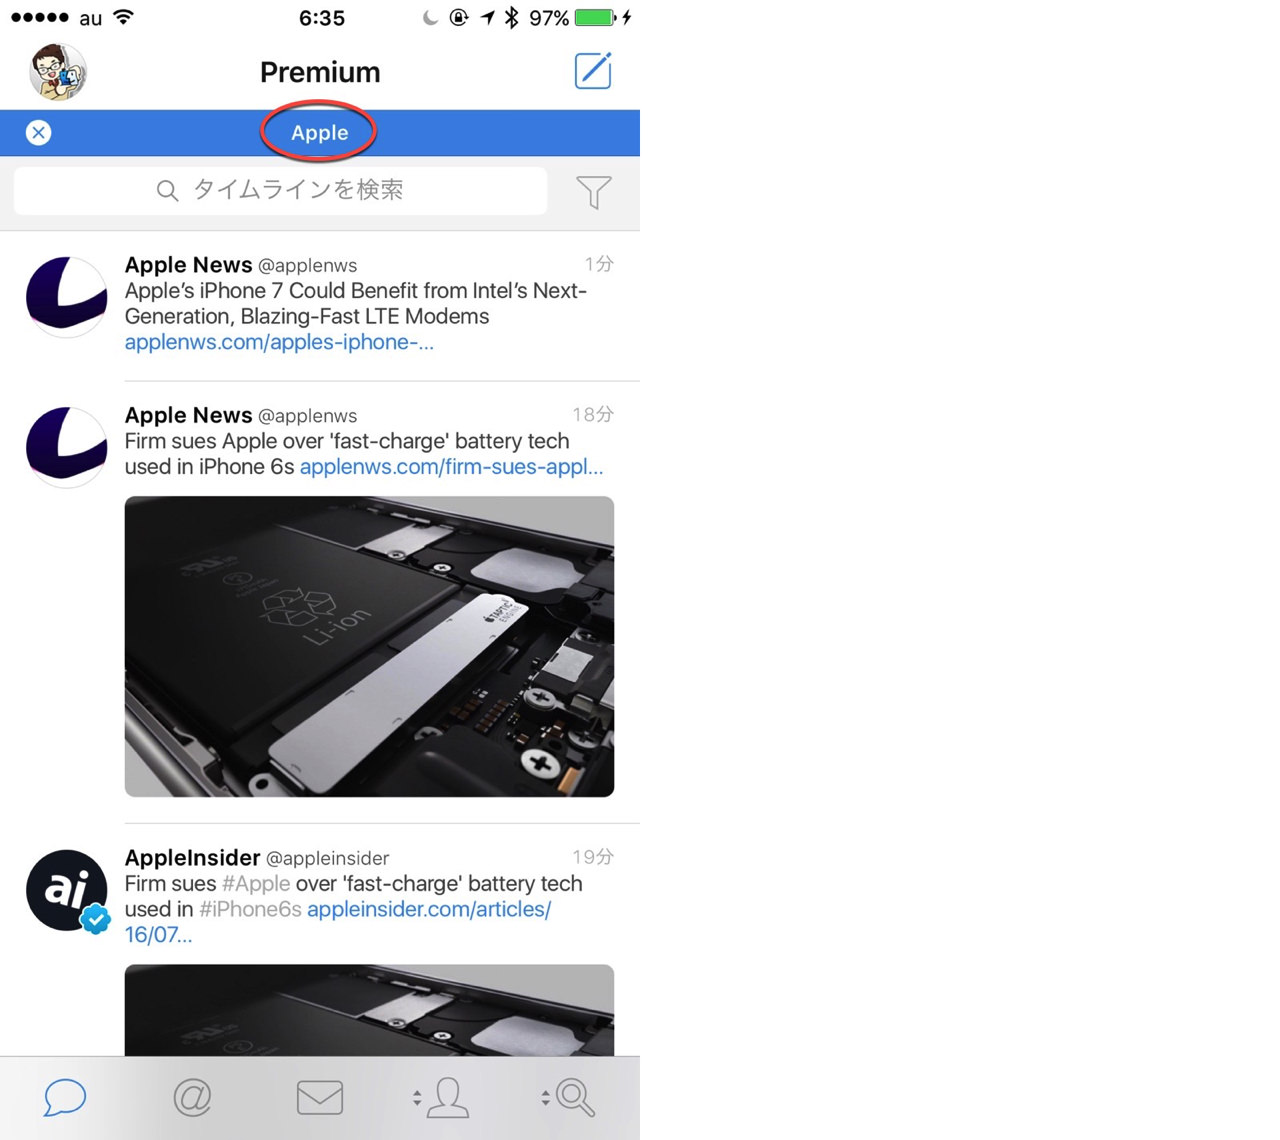 How to apply filter list ios tweetbot 4 for twitter1